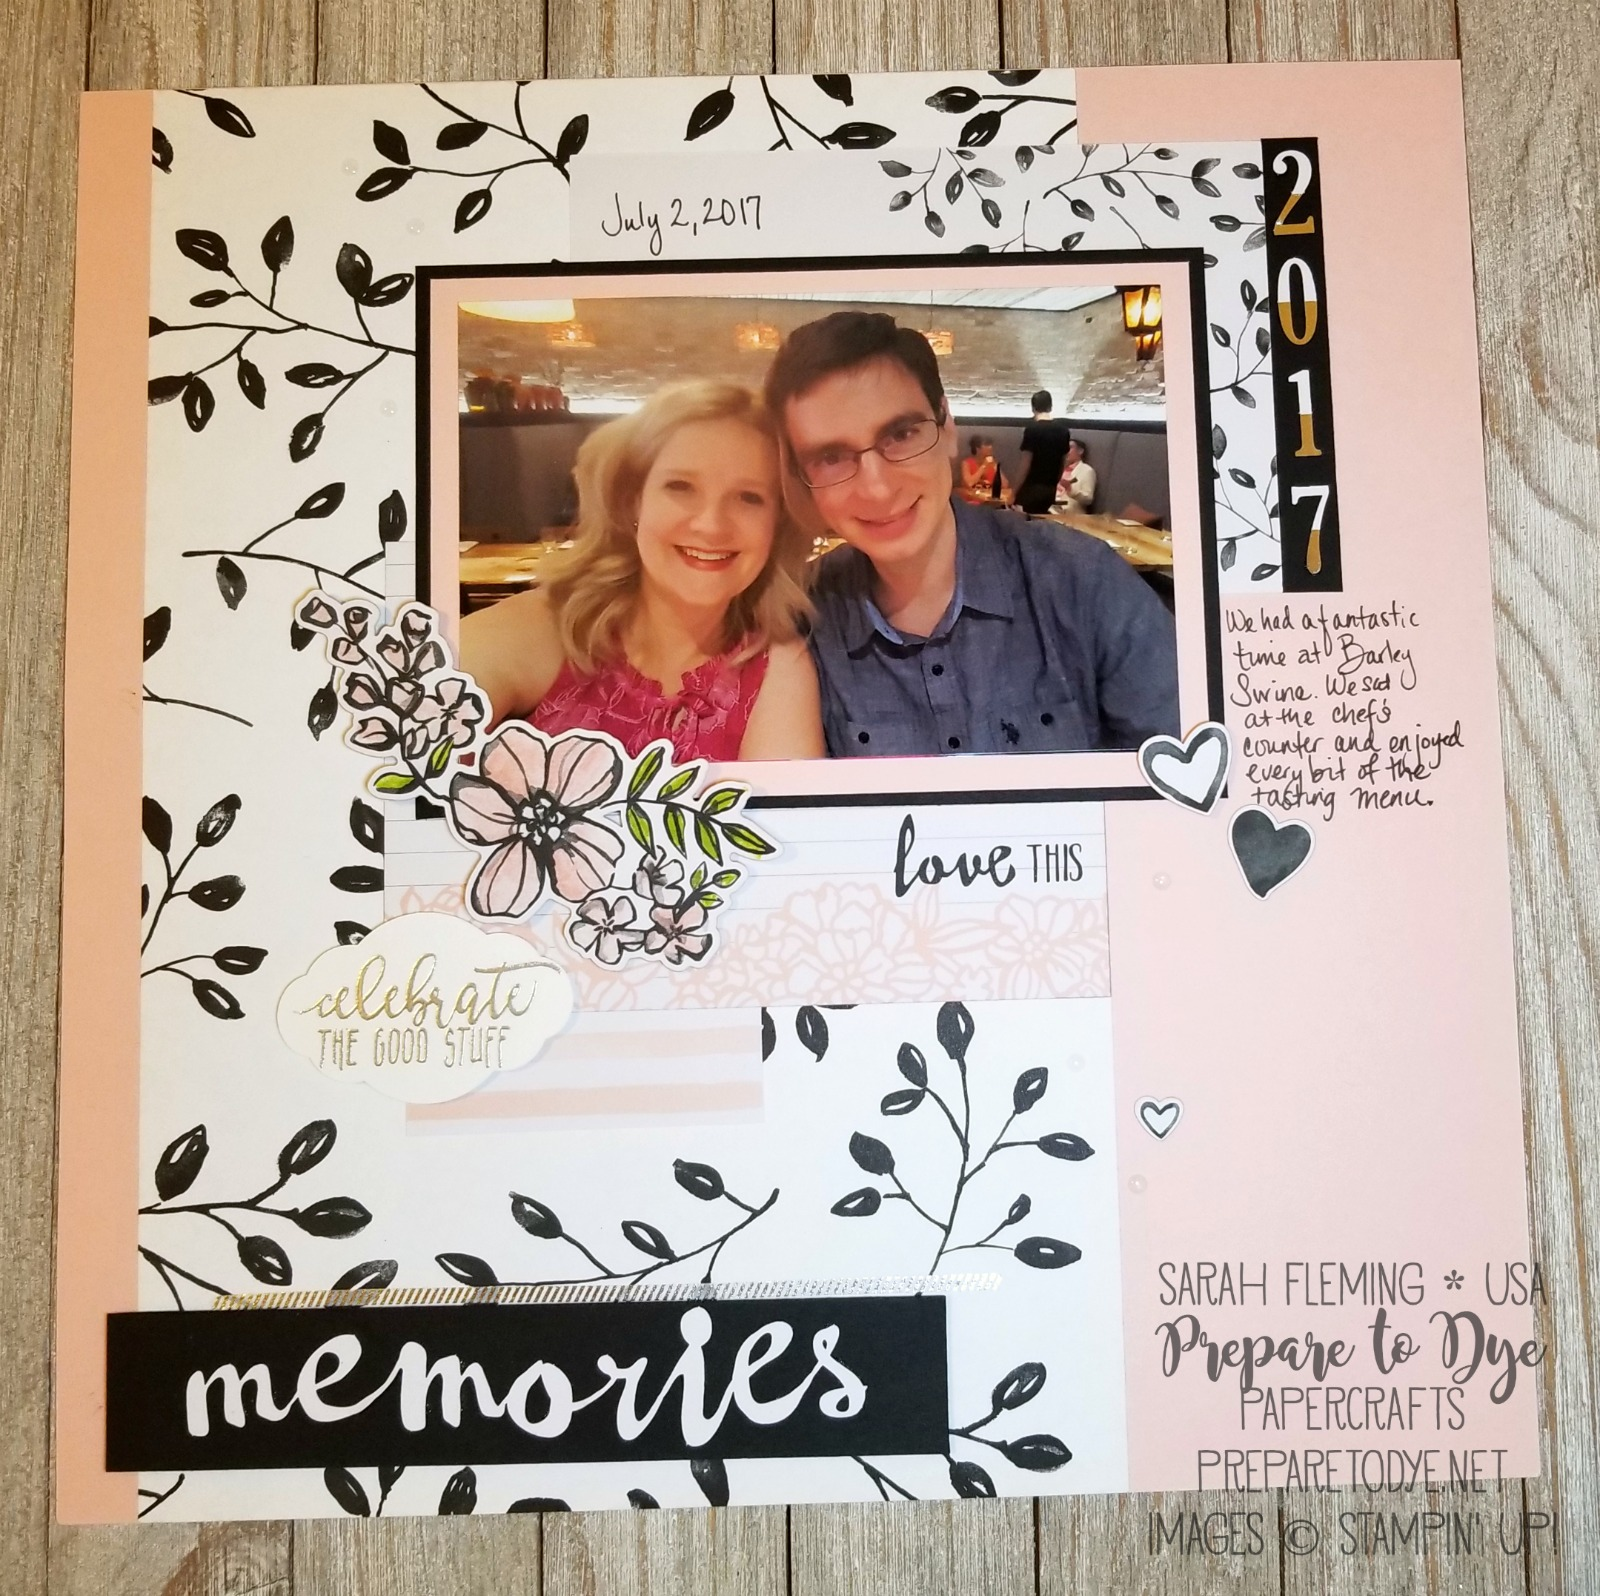 Stampin' Up! Petal Passion paper, Petal Passion Memories & More Card Pack, Sweet Soiree Embellishment Kit, Picture Perfect Birthday - Sarah Fleming - Prepare to Dye Papercrafts